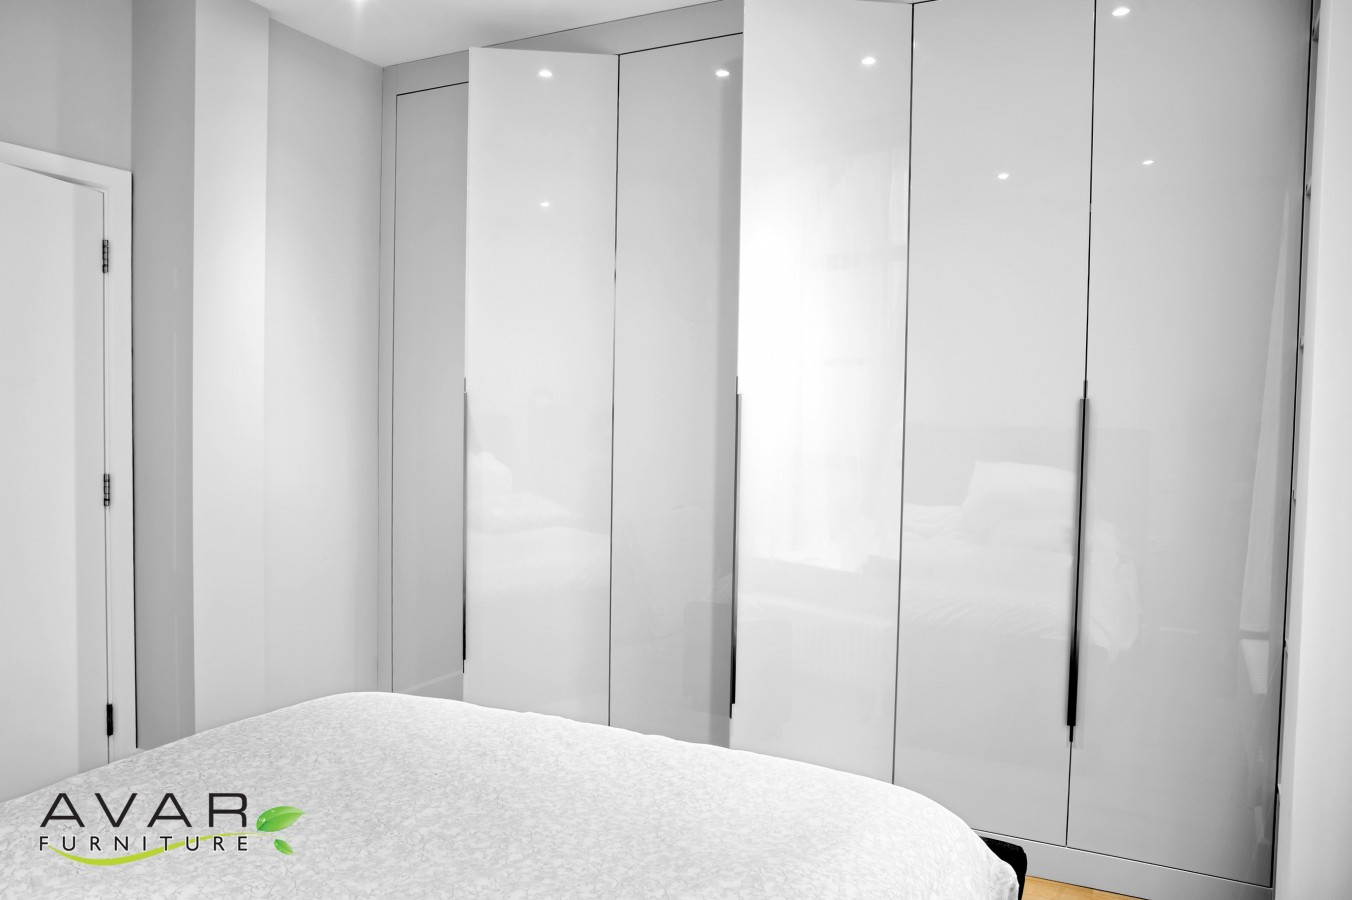 Fitted wardrobe ideas gallery 19 north london uk for Modern furniture london uk